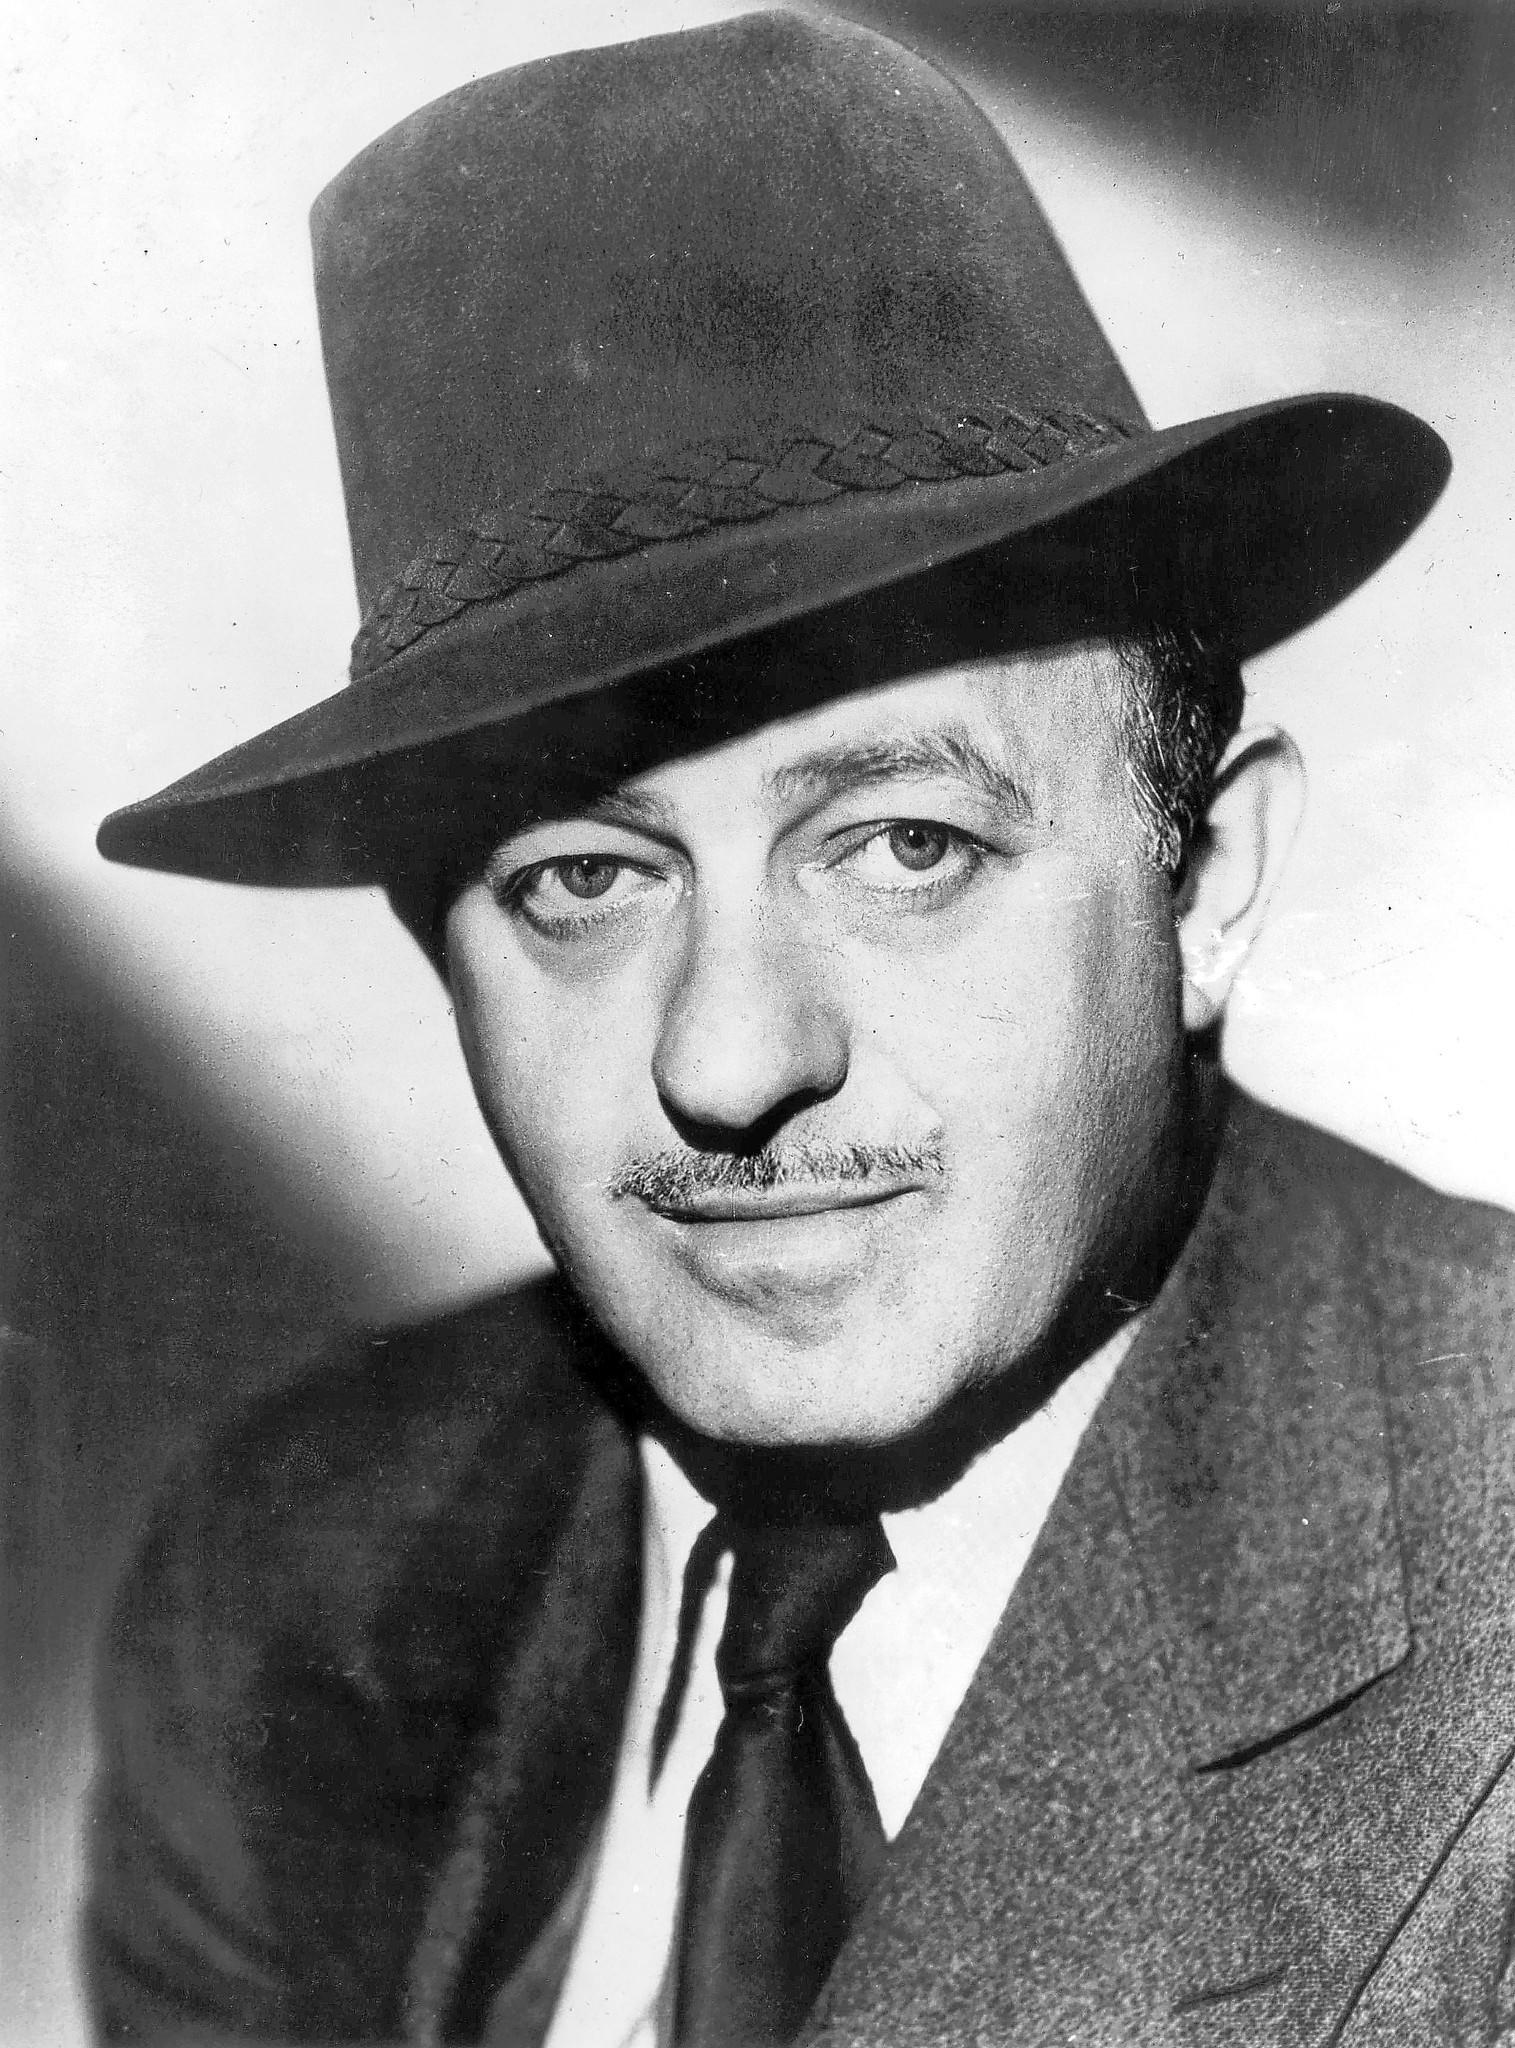 Ben Hecht moved to Chicago in 1910.